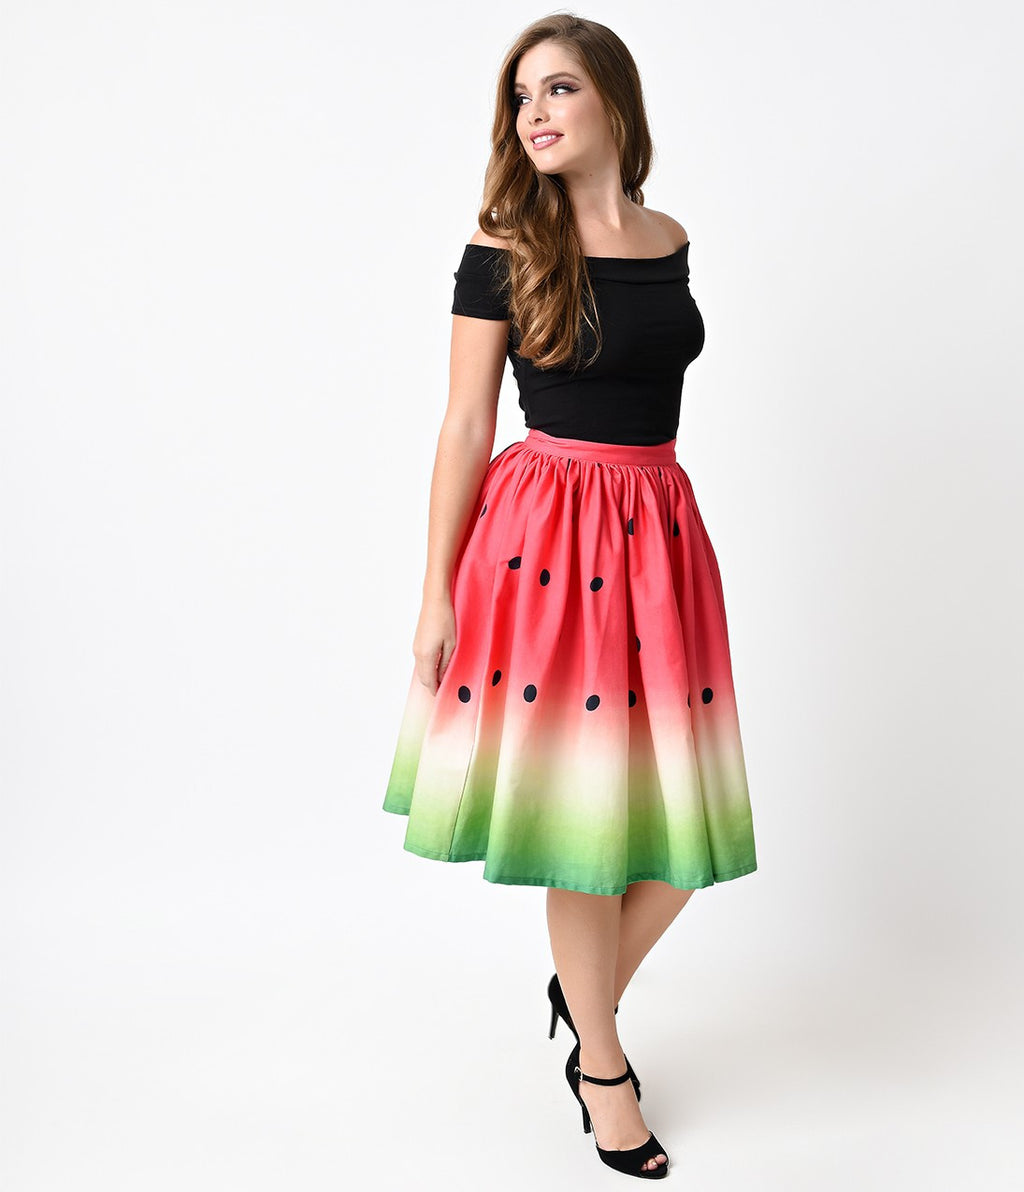 Watermelon Circle Swing Skirt (XS ONLY)